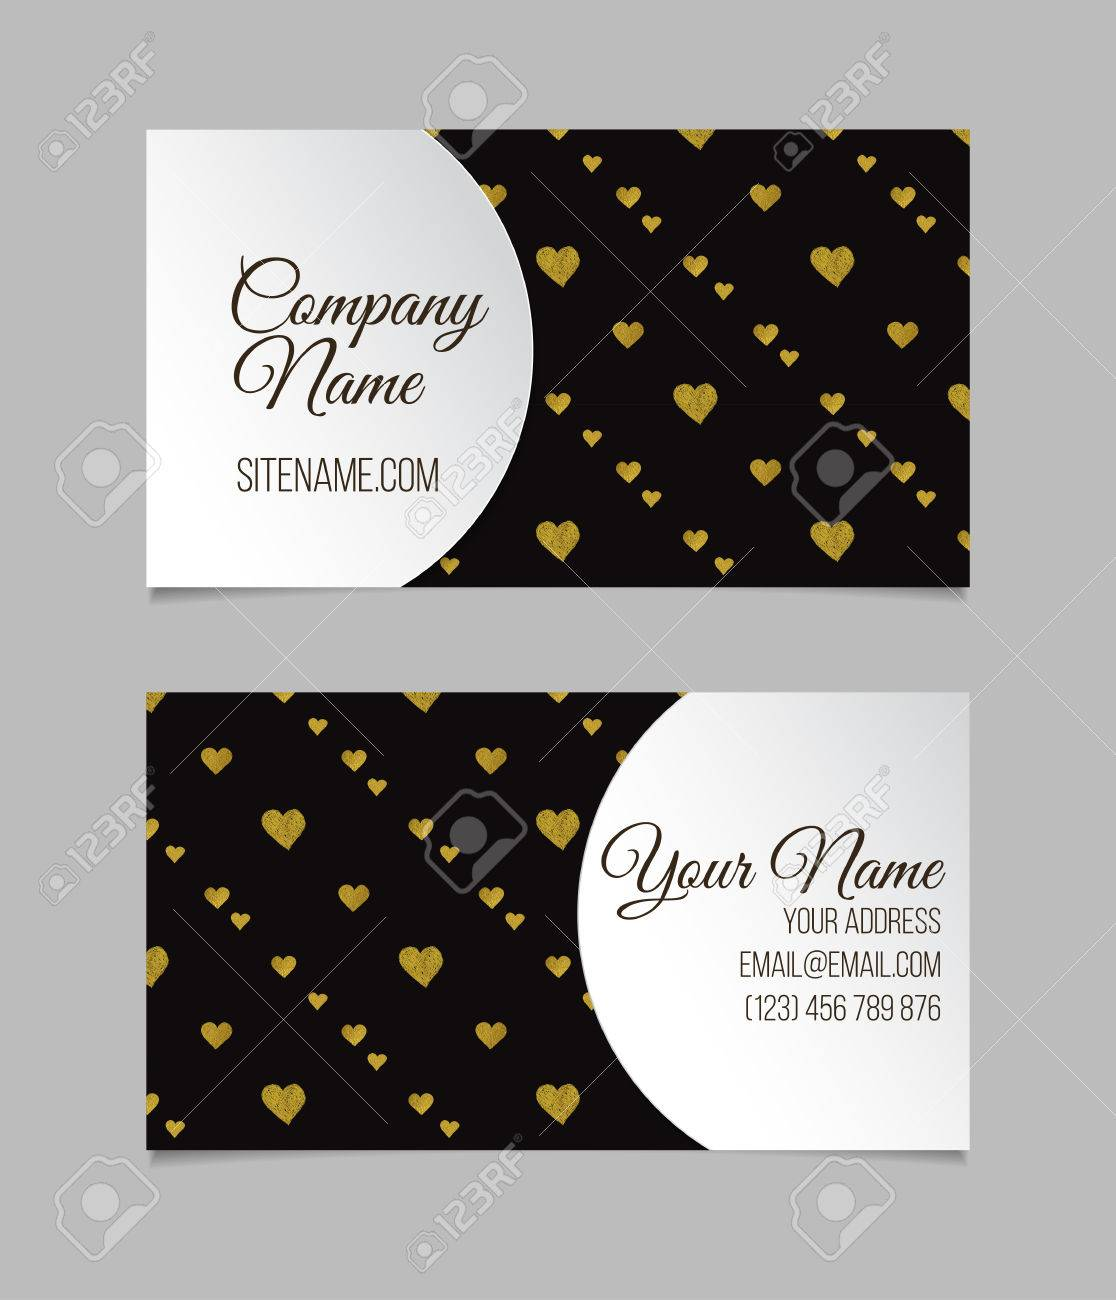 Business card template visiting card with golden foil hearts business card template visiting card with golden foil hearts double sided vector business accmission Gallery